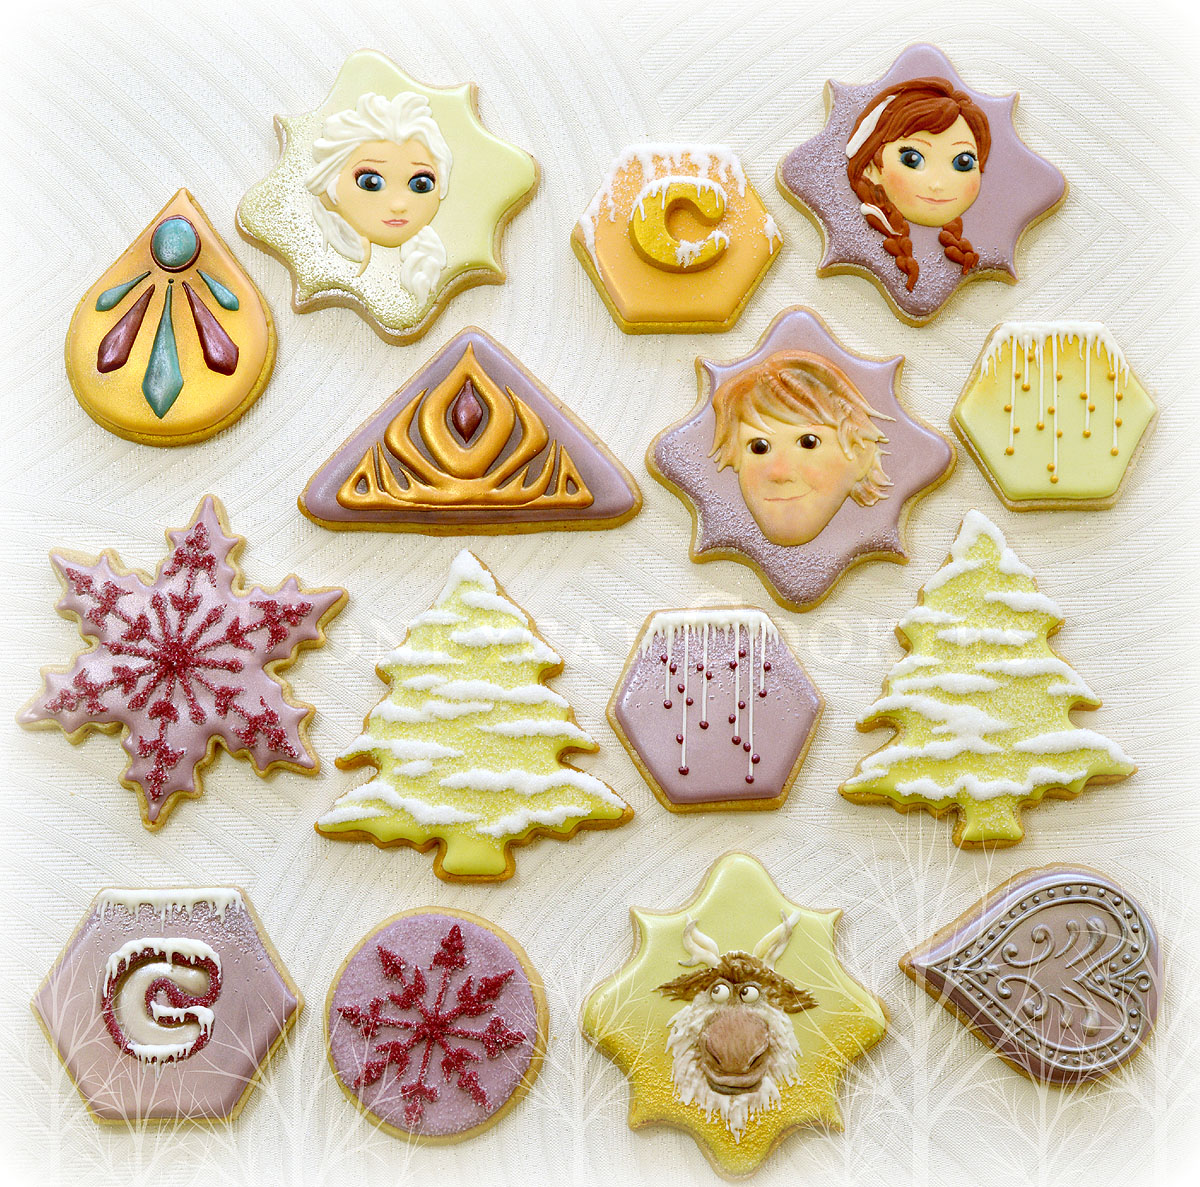 Full set of characters from Disney's Frozen on decorated cookies, photo by Honeycat Cookies